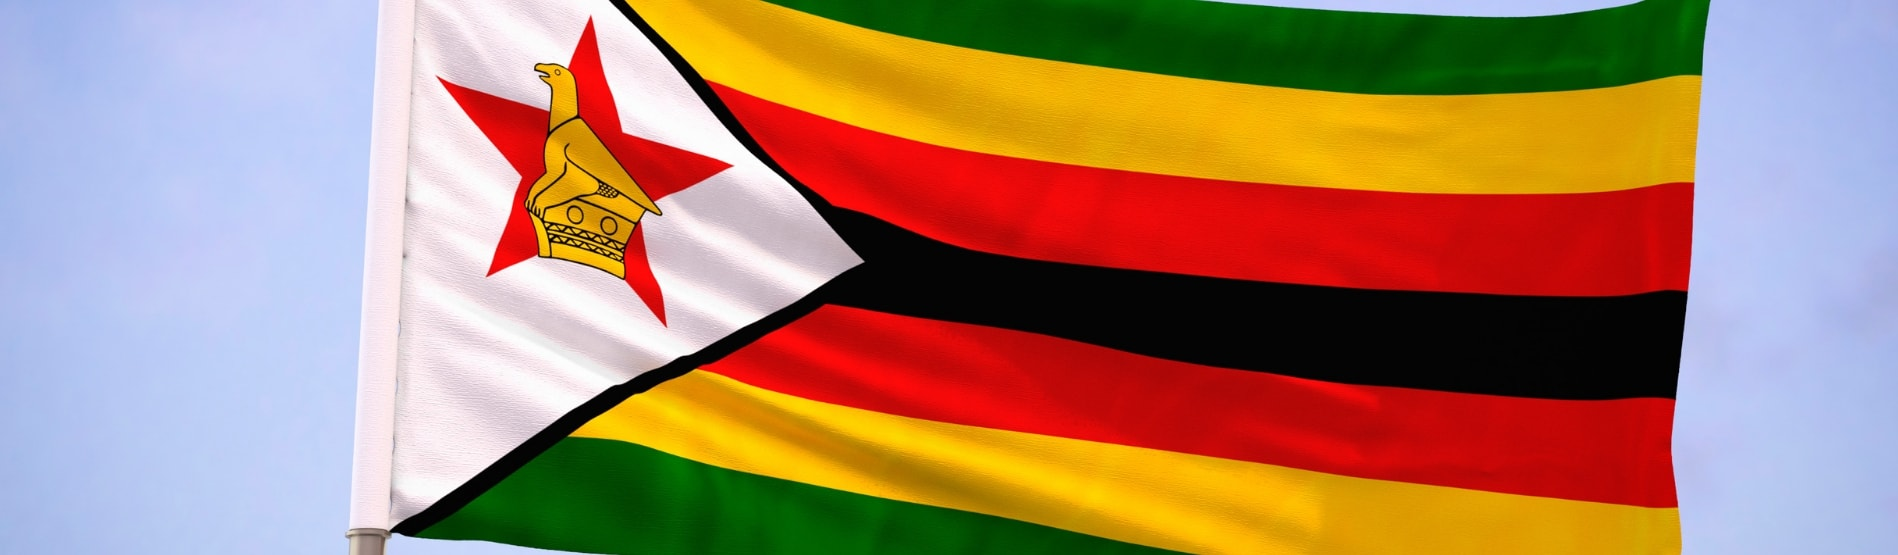 Zimbabwe flag blowing in the breeze.